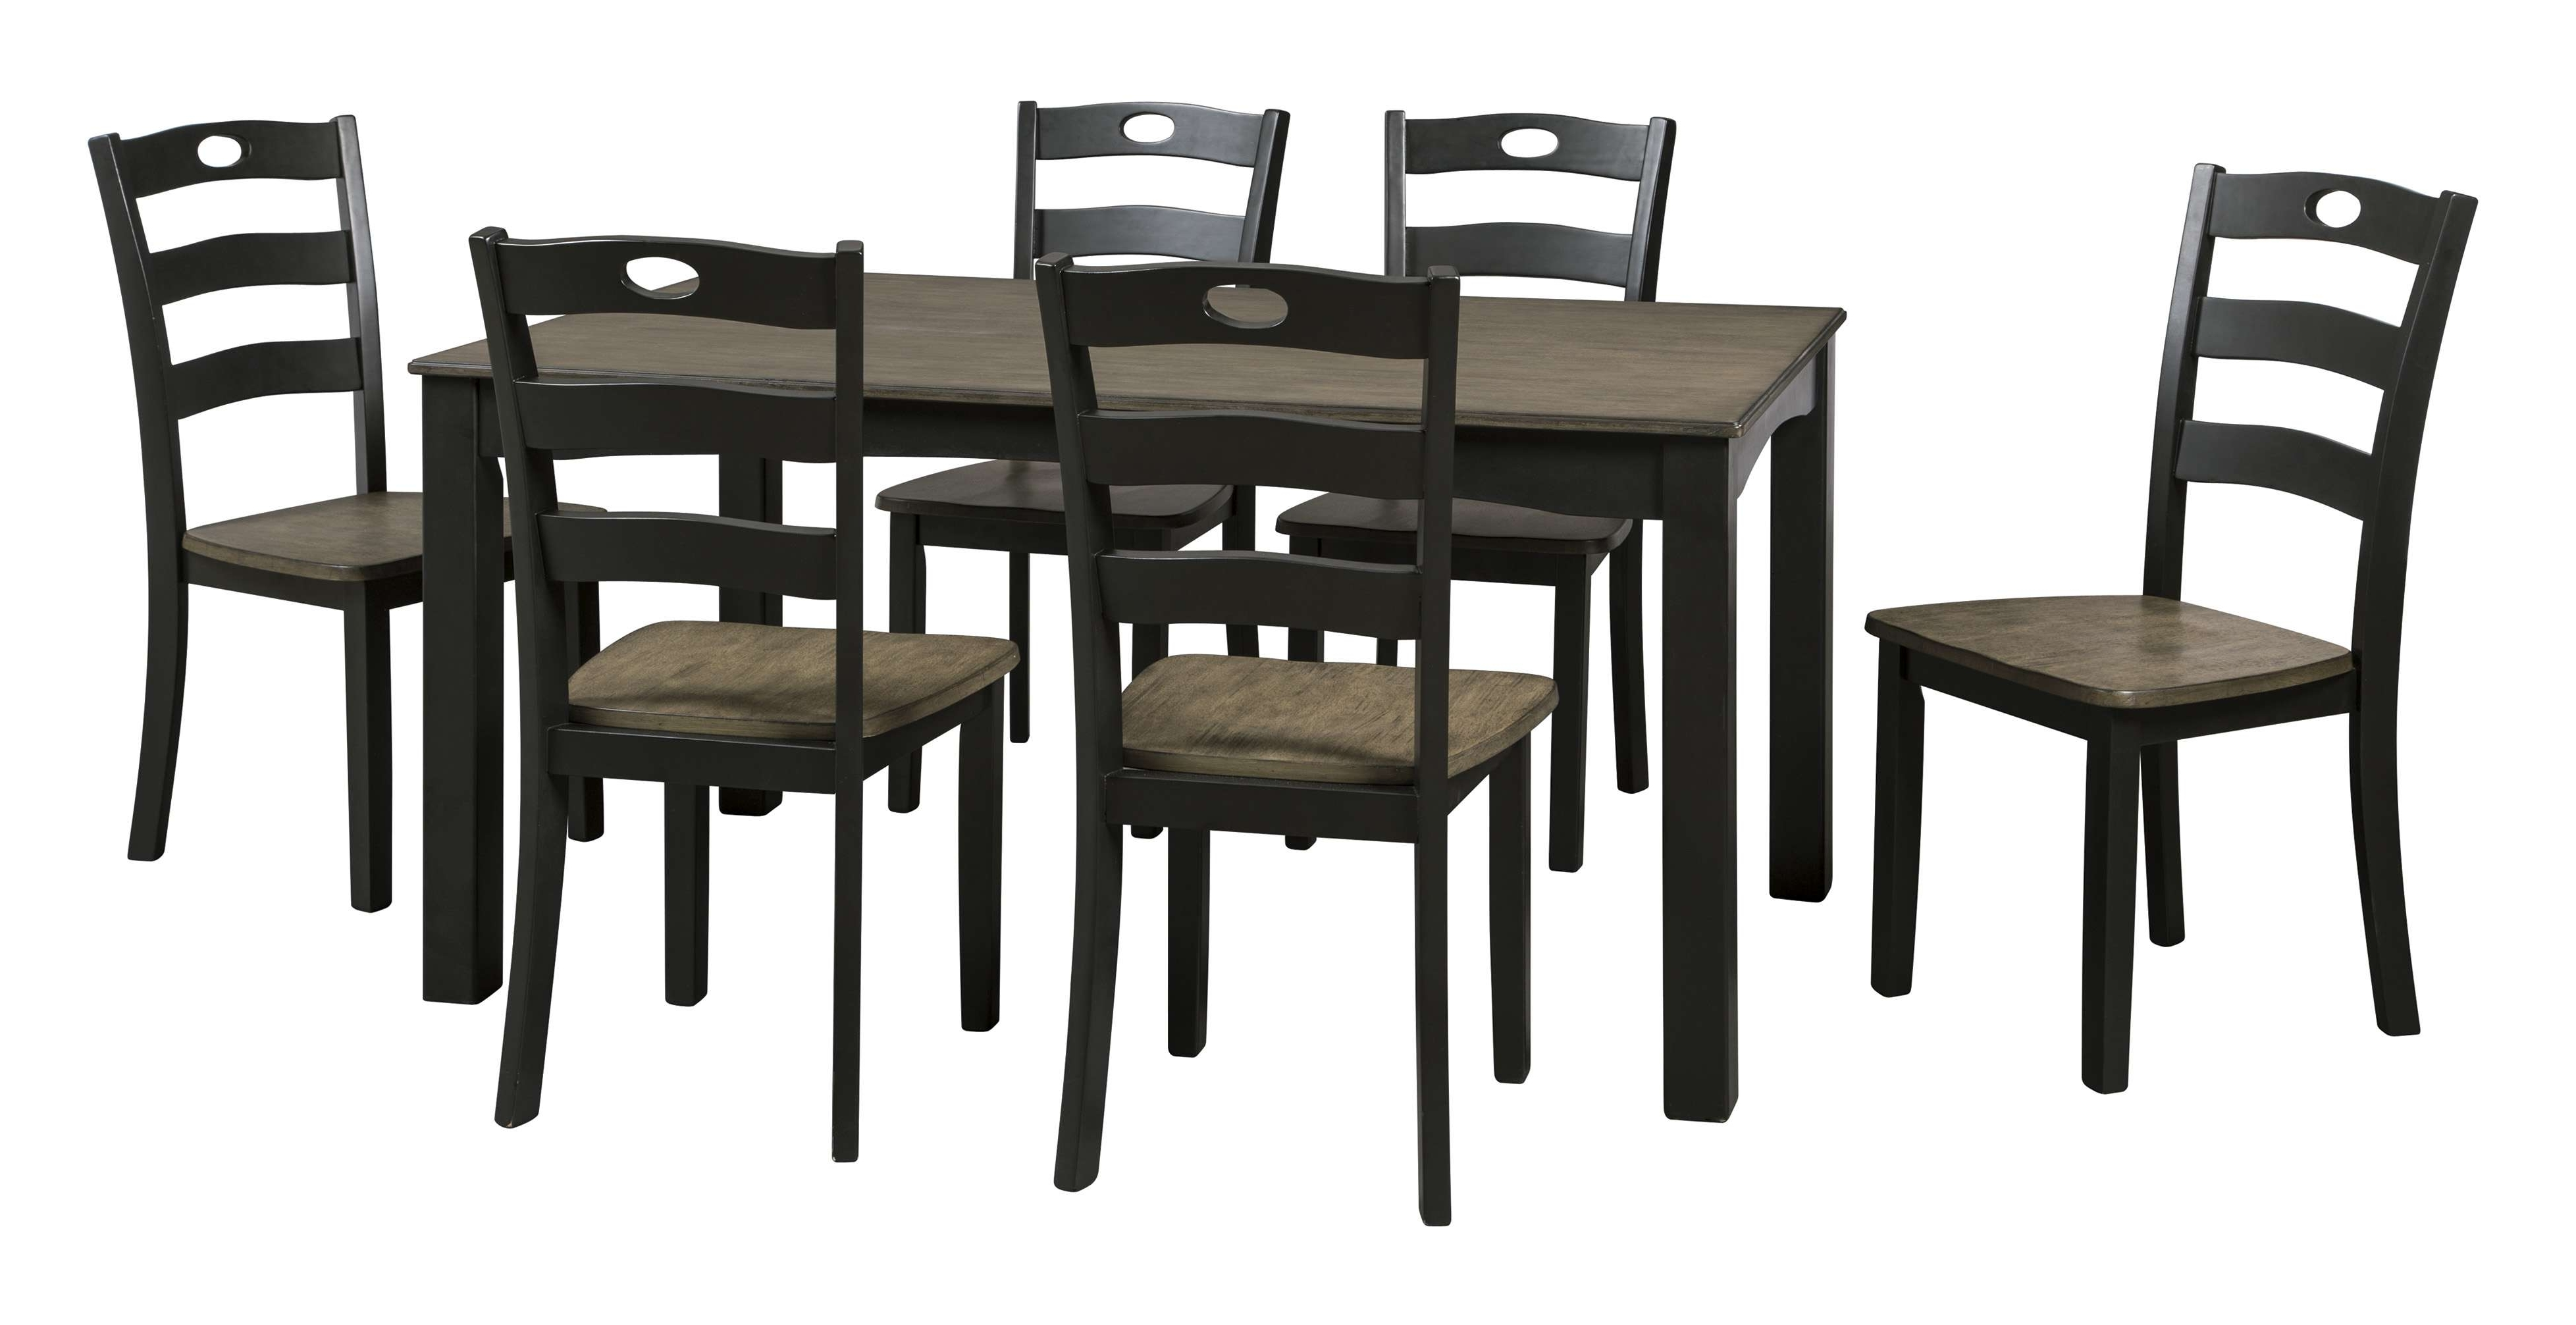 Signature Designashley Froshburg Grayish Brown & Black 7 Piece Within Well Known Jaxon 7 Piece Rectangle Dining Sets With Wood Chairs (View 23 of 25)